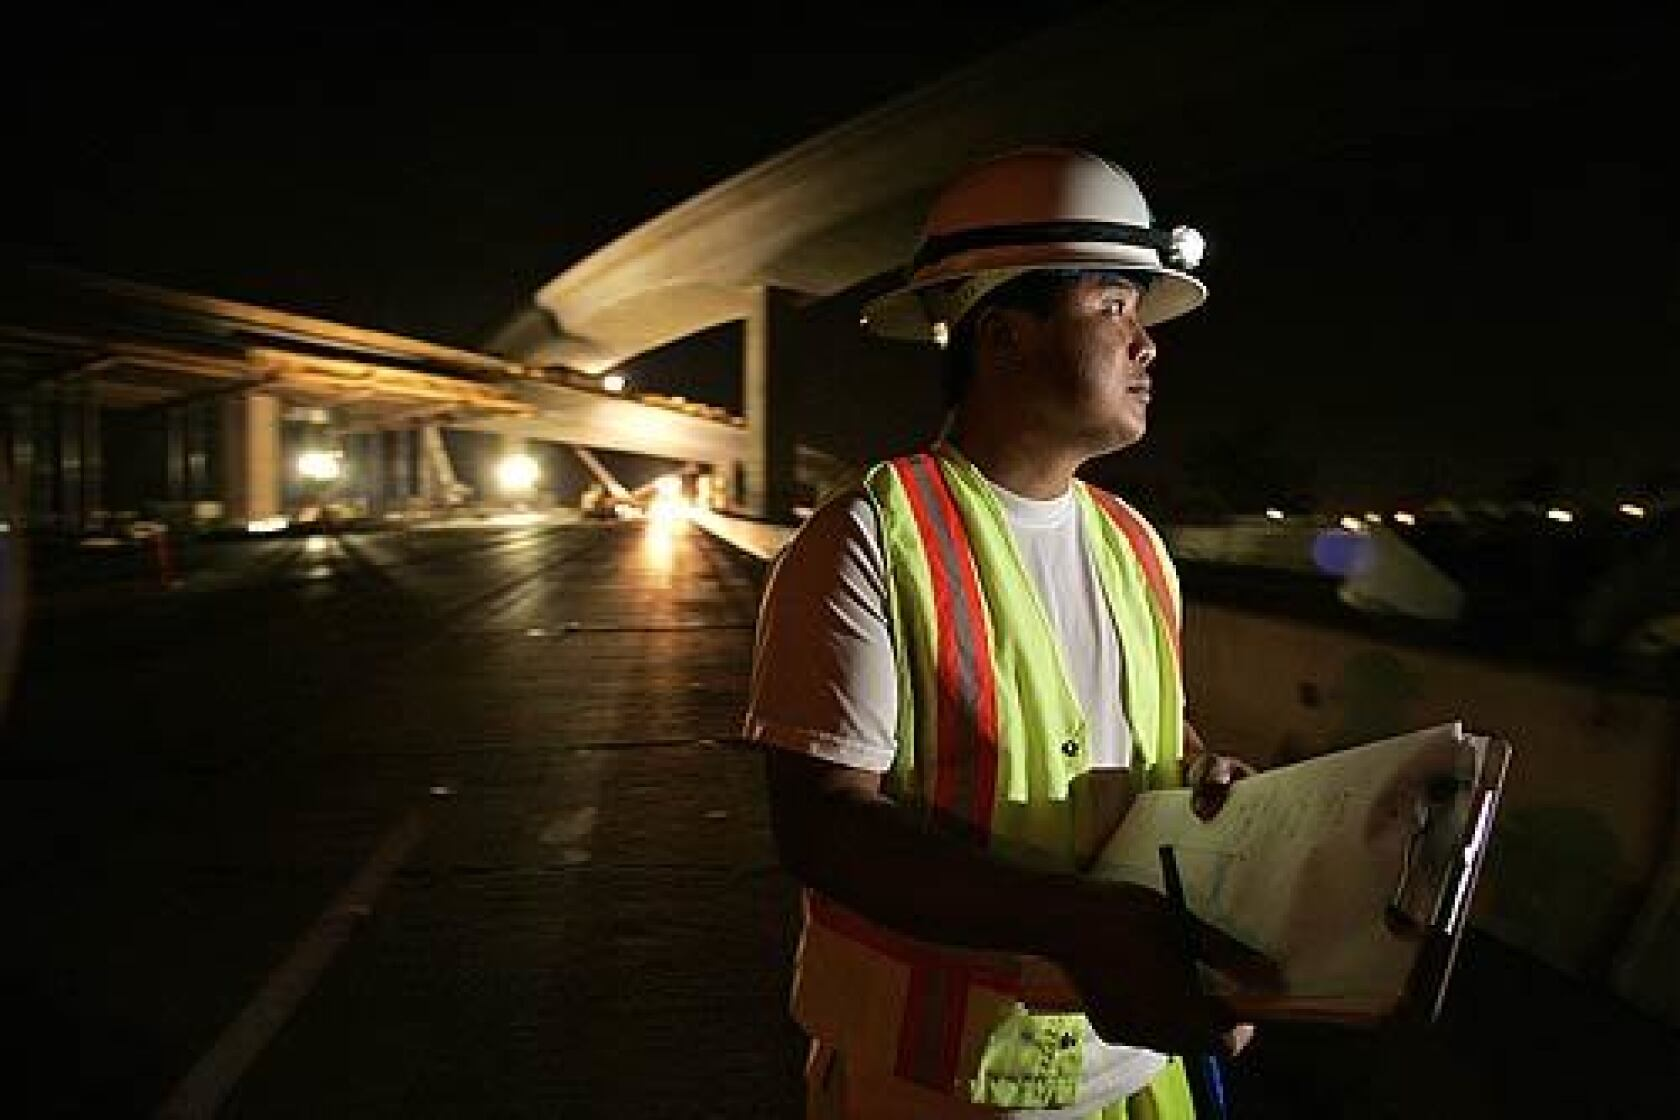 Relief is near on 60/91/215 interchange - Los Angeles Times